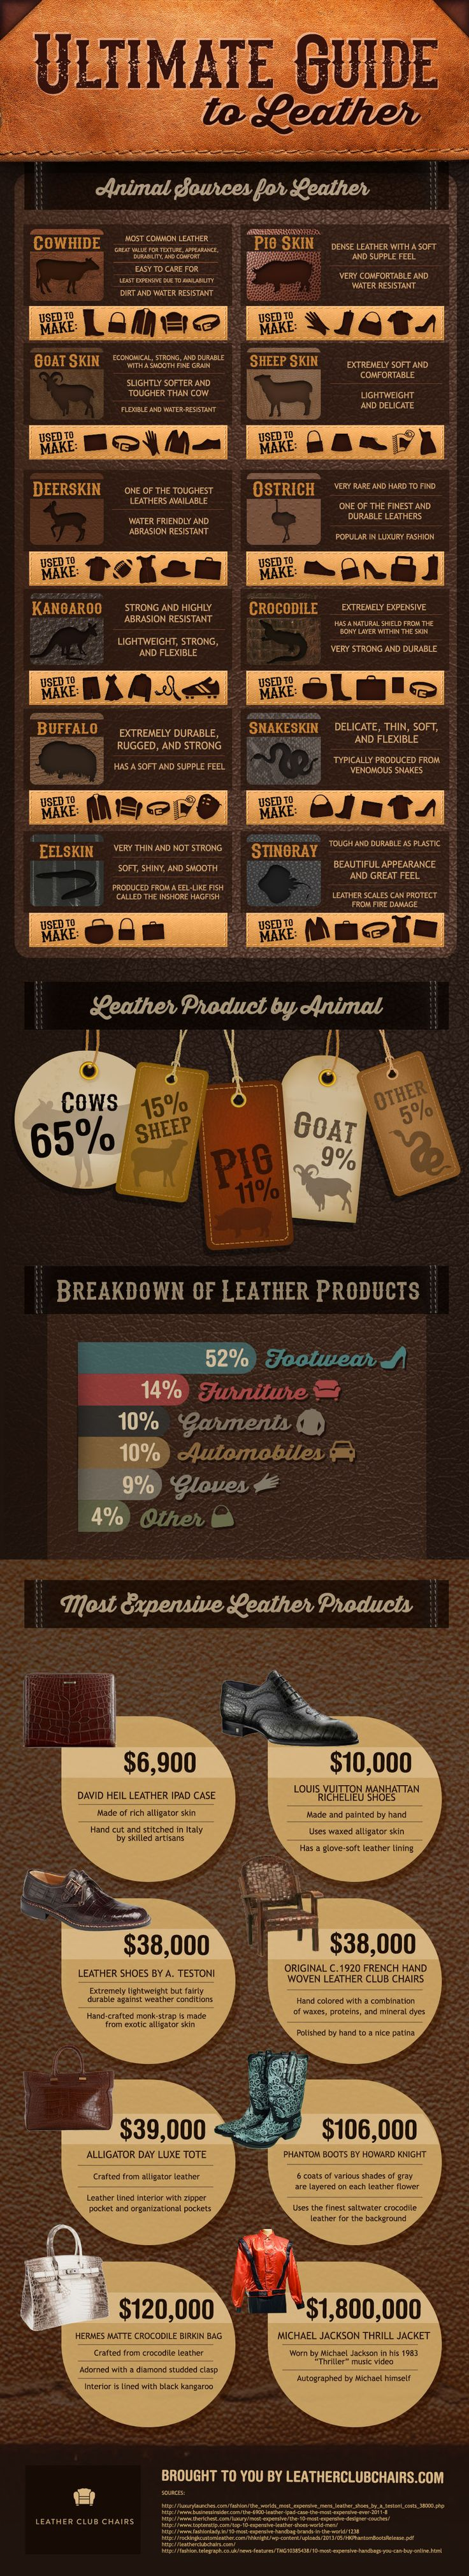 Ultimate Guide to Leather #infographic ~ Visualistan                                                                                                                                                                                 More